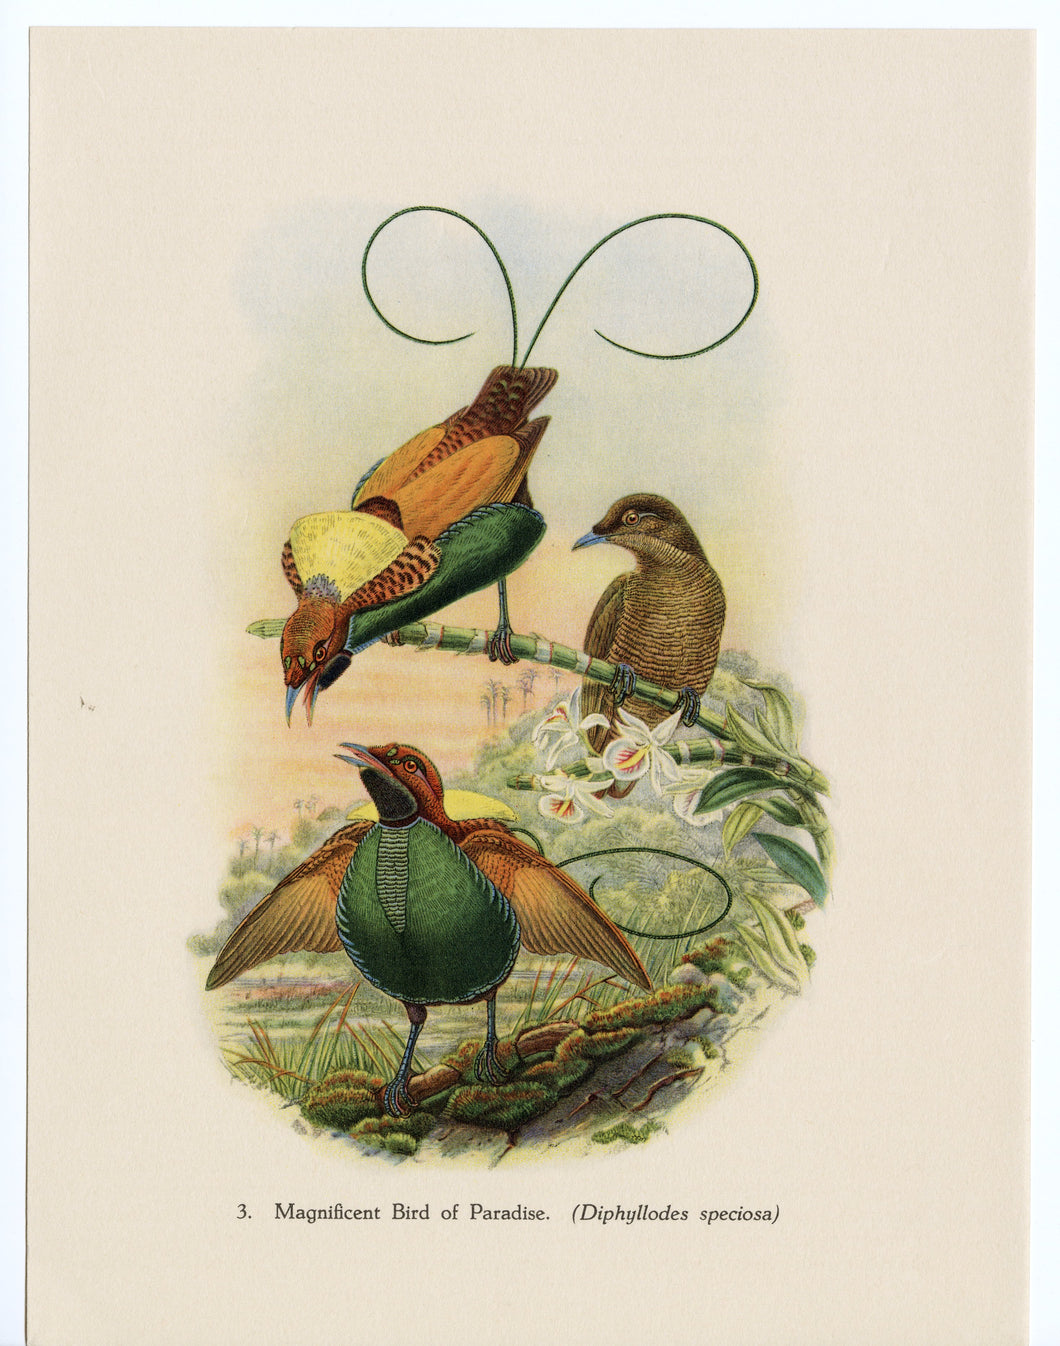 1948 Vintage, Colorful Birds of Paradise Scientific Lithographic Print